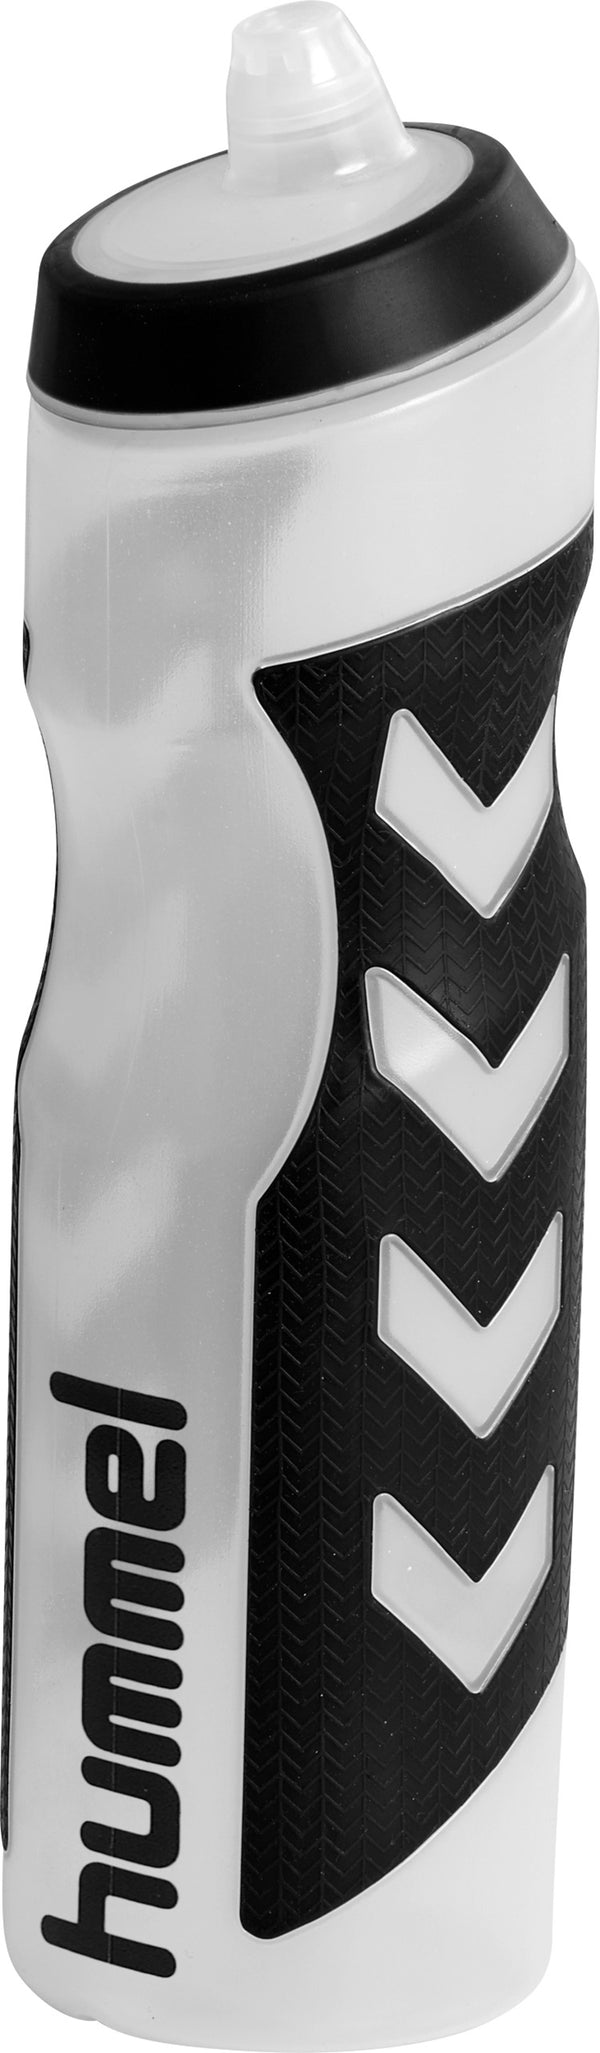 Hummel Water Bottle-Soccer Command